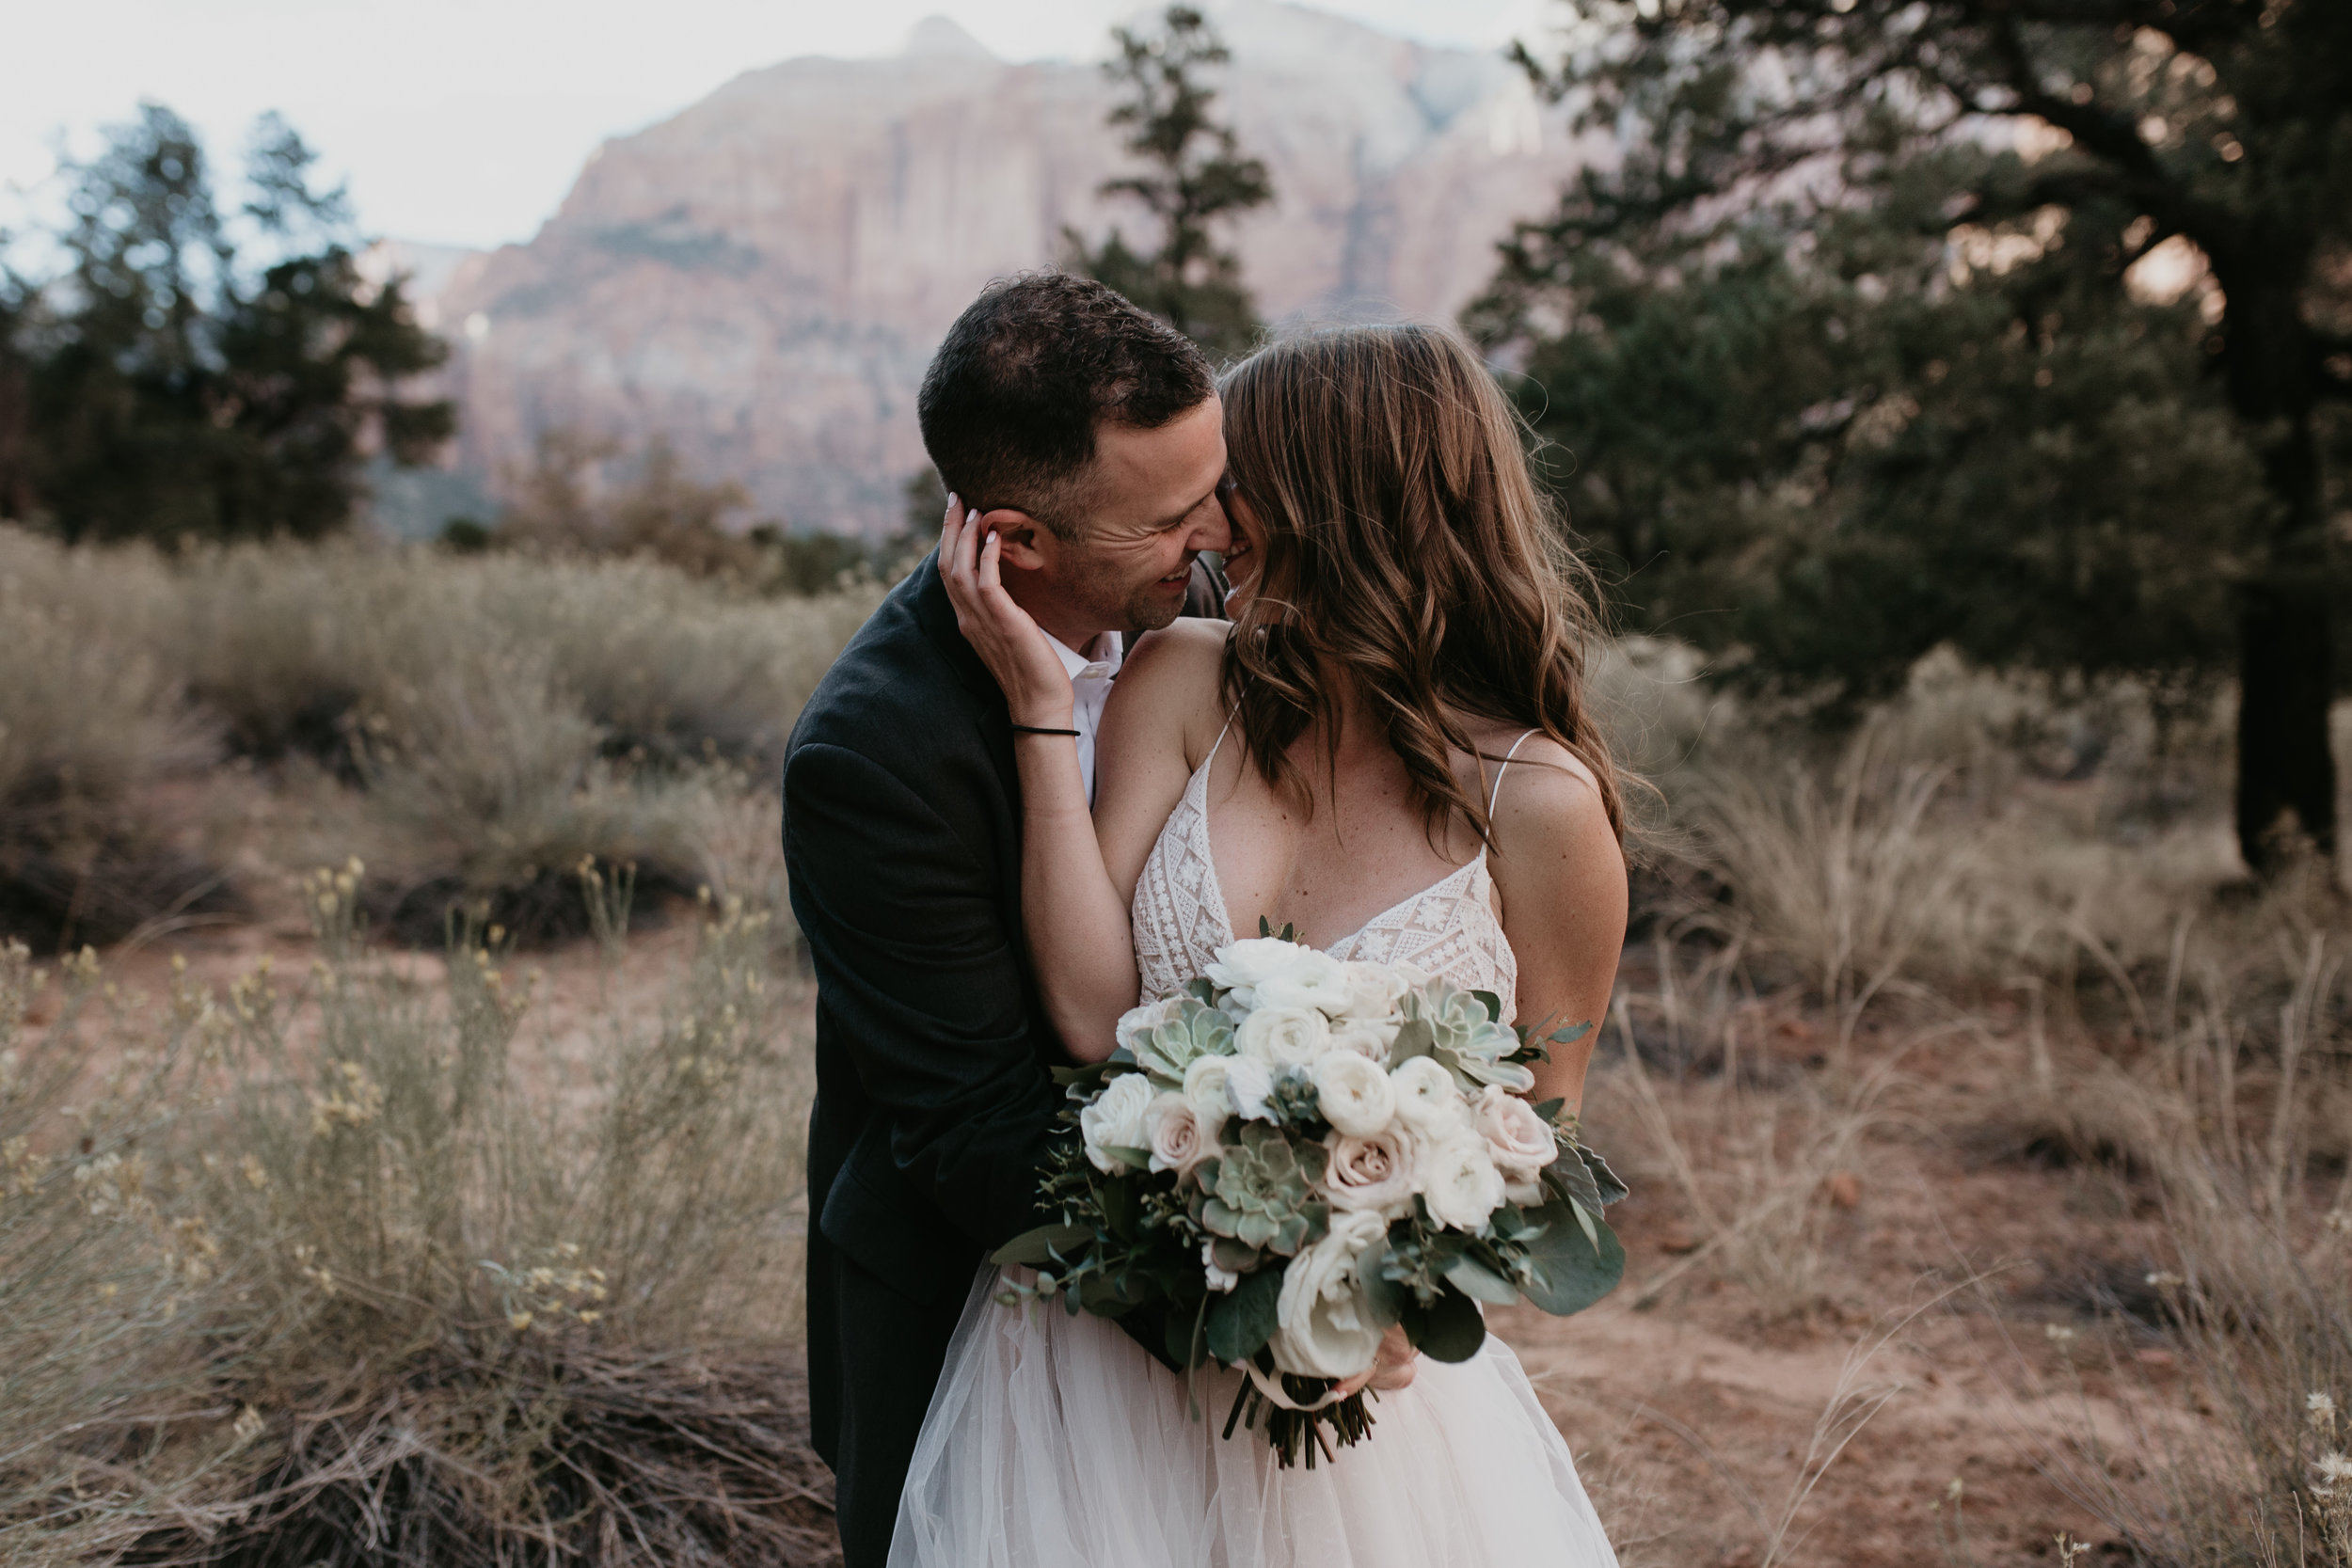 nicole-daacke-photography-zion-national-park-elopement-photographer-canyon-overlook-trail-elope-hiking-adventure-wedding-photos-fall-utah-red-rock-canyon-stgeorge-eloping-photographer-22.jpg